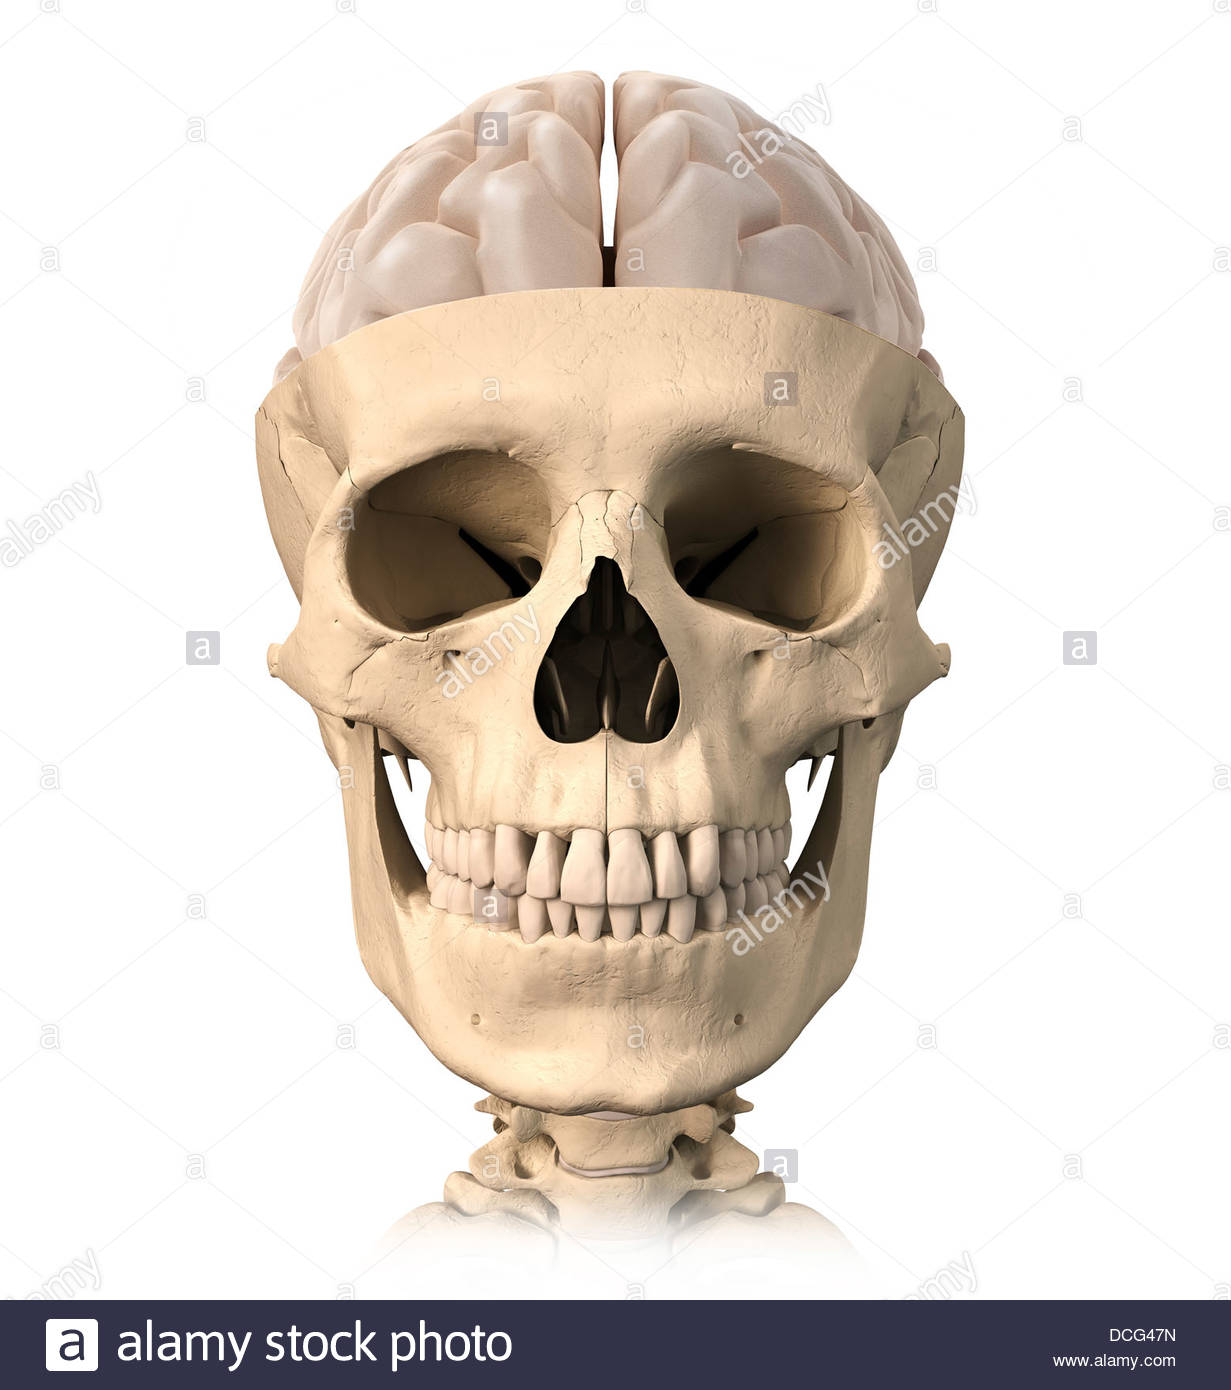 Anatomy of human skull, cutaway view with half brain showing, front ...